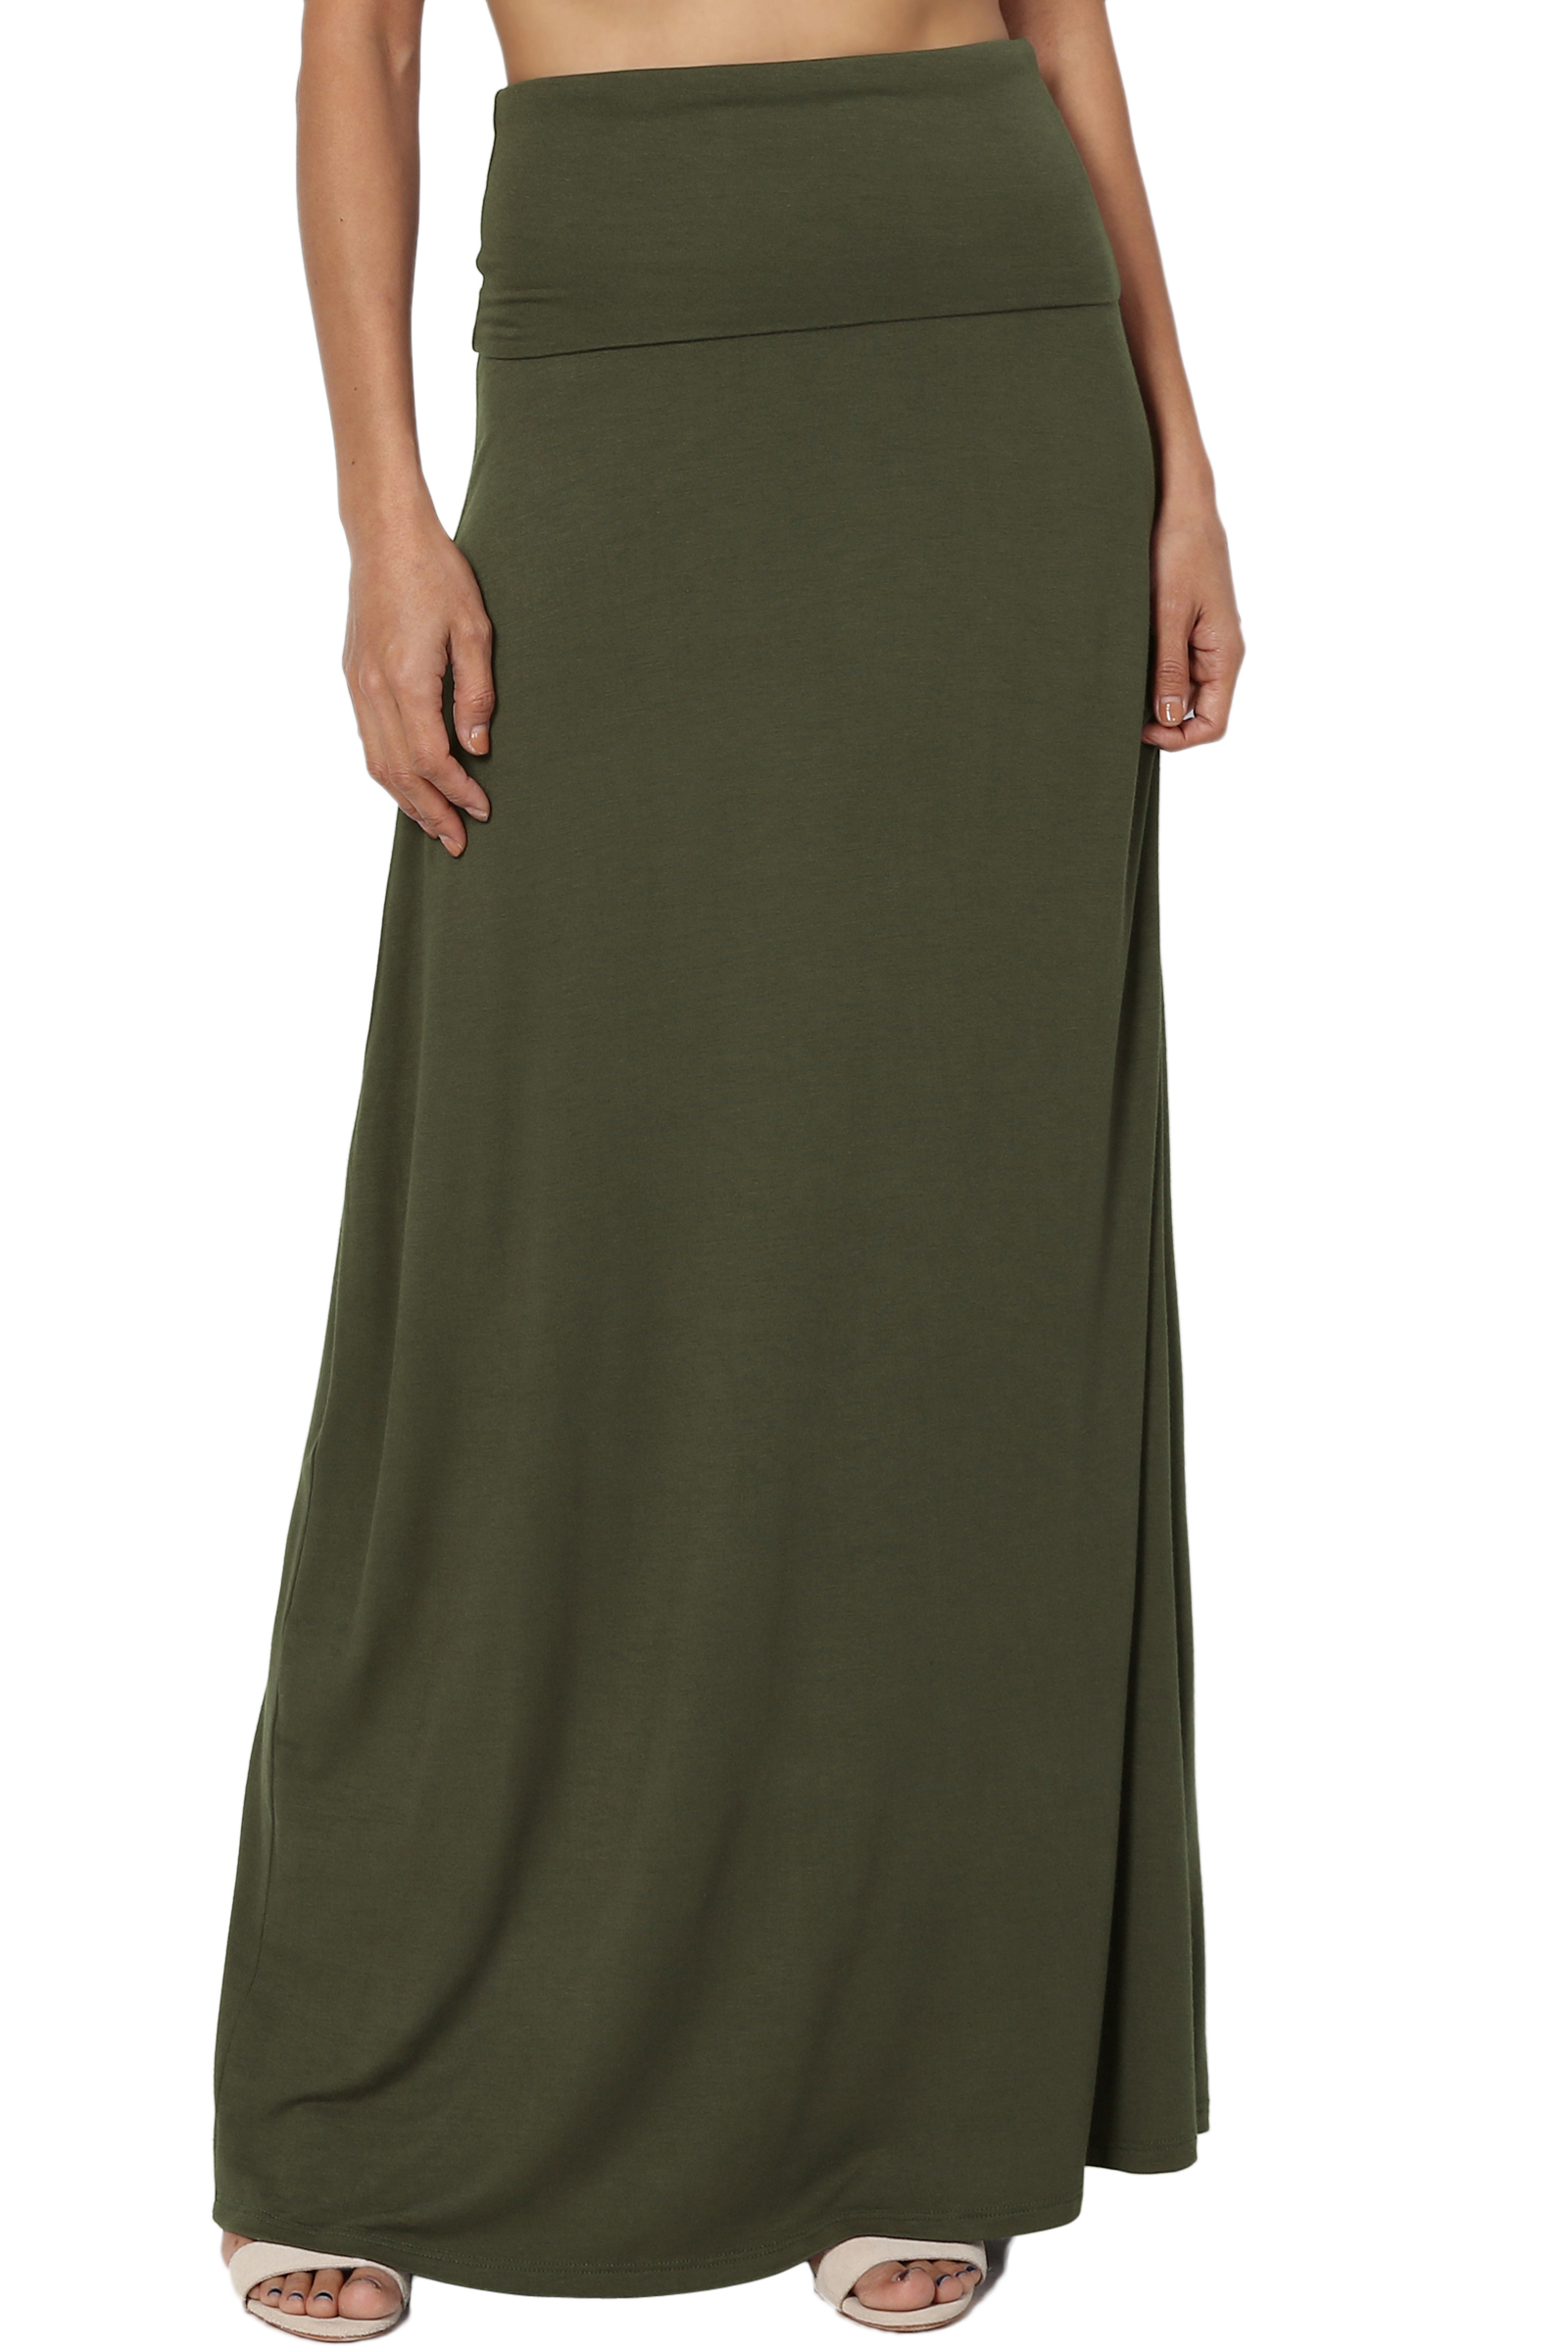 TheMogan Women's Casual Solid Draped Jersey Foldable Waist Relaxed Long Maxi Skirt